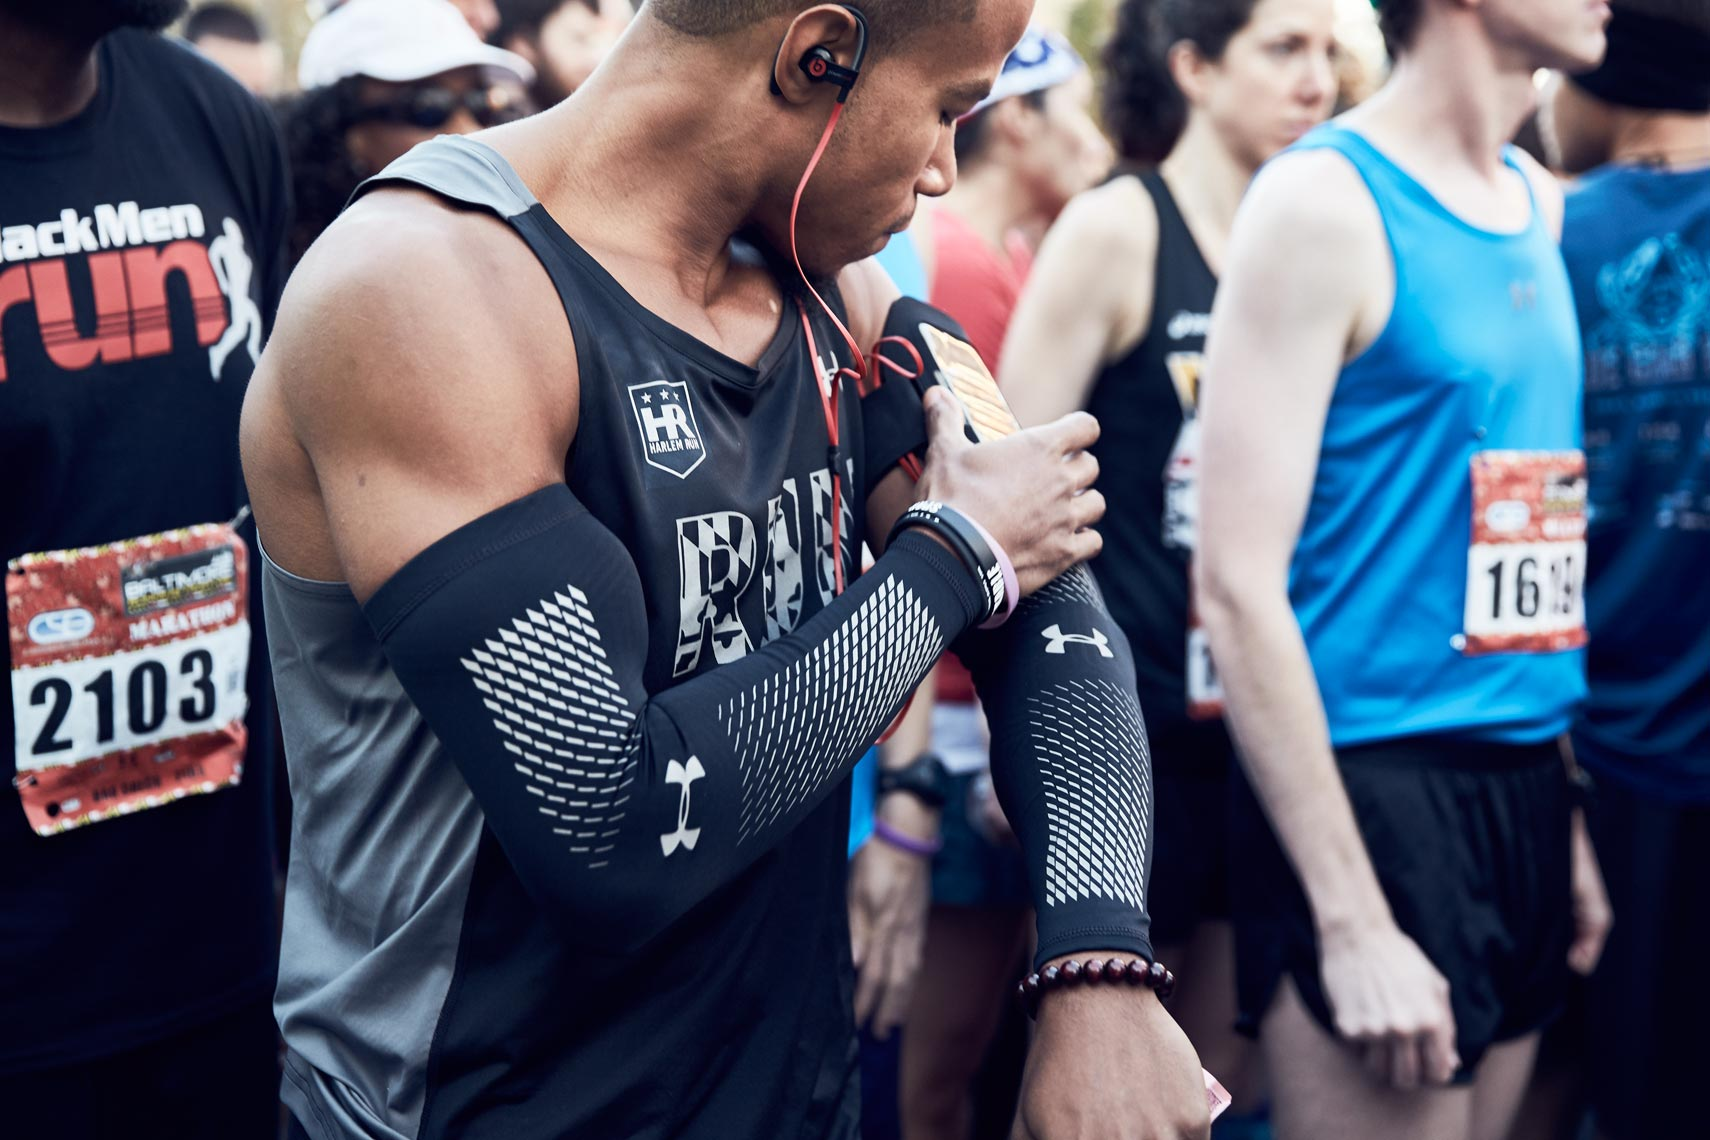 Harlem Run  - Under Armour